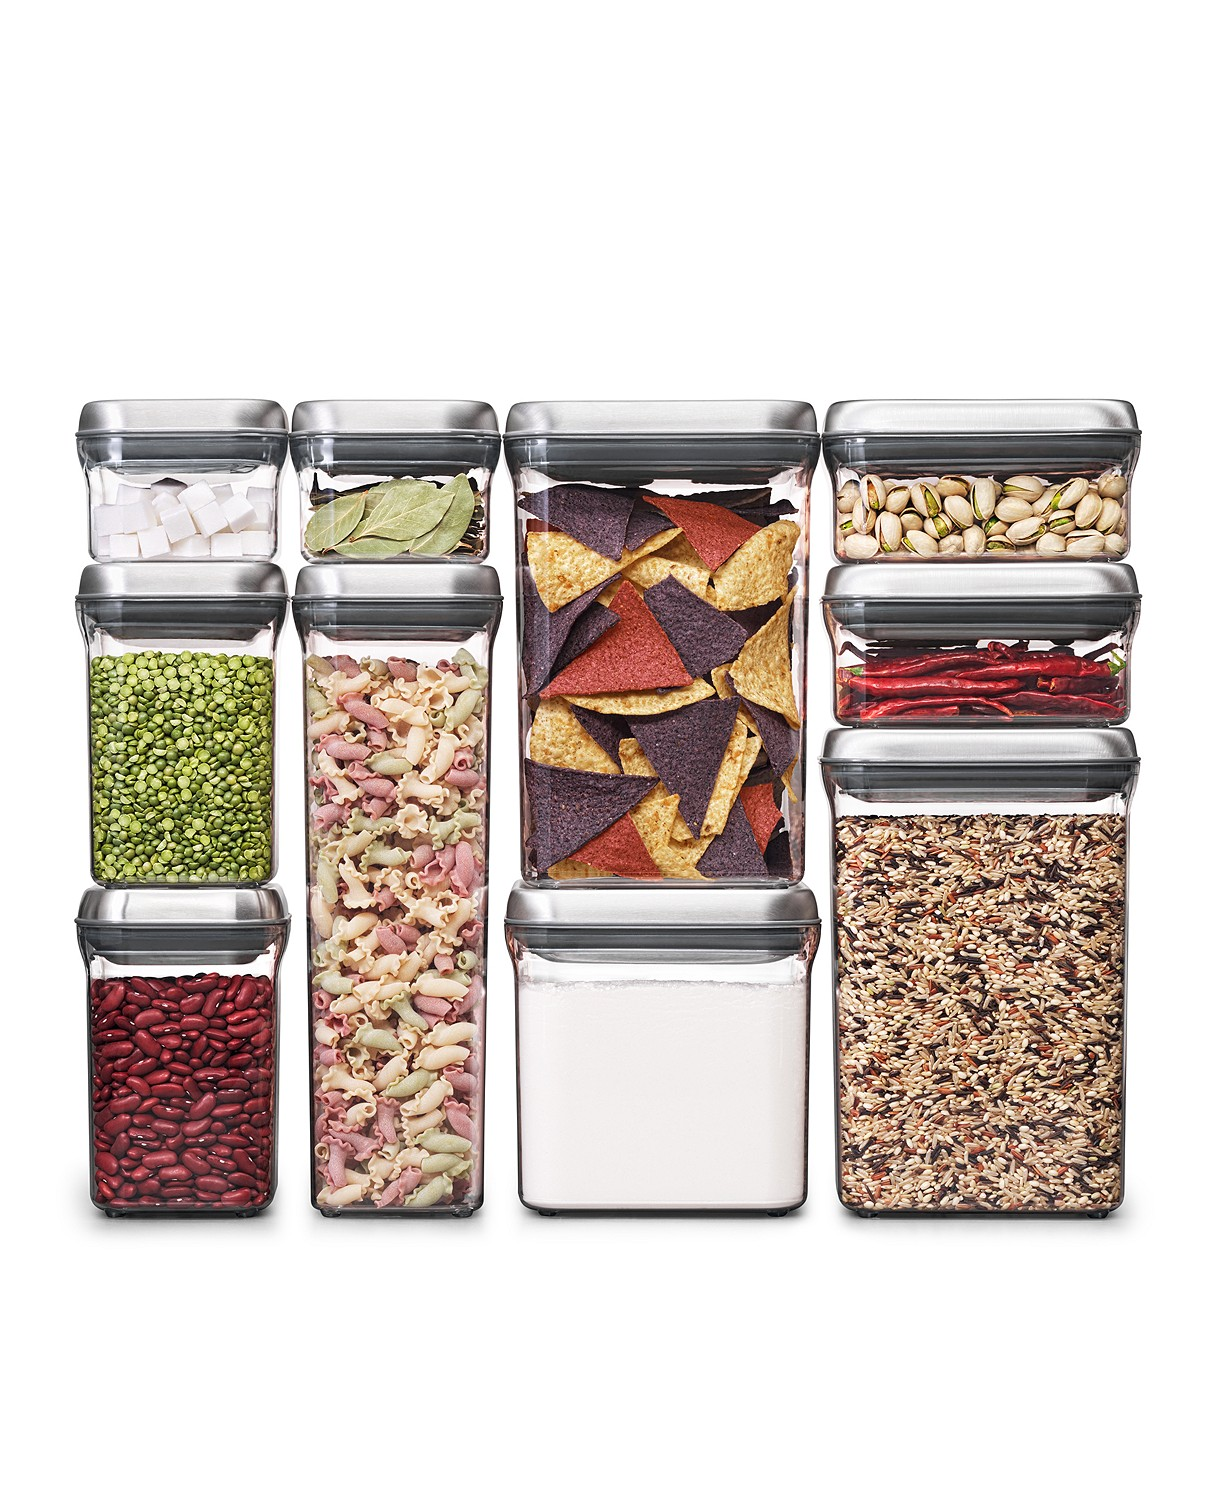 oxo pop containers_macys